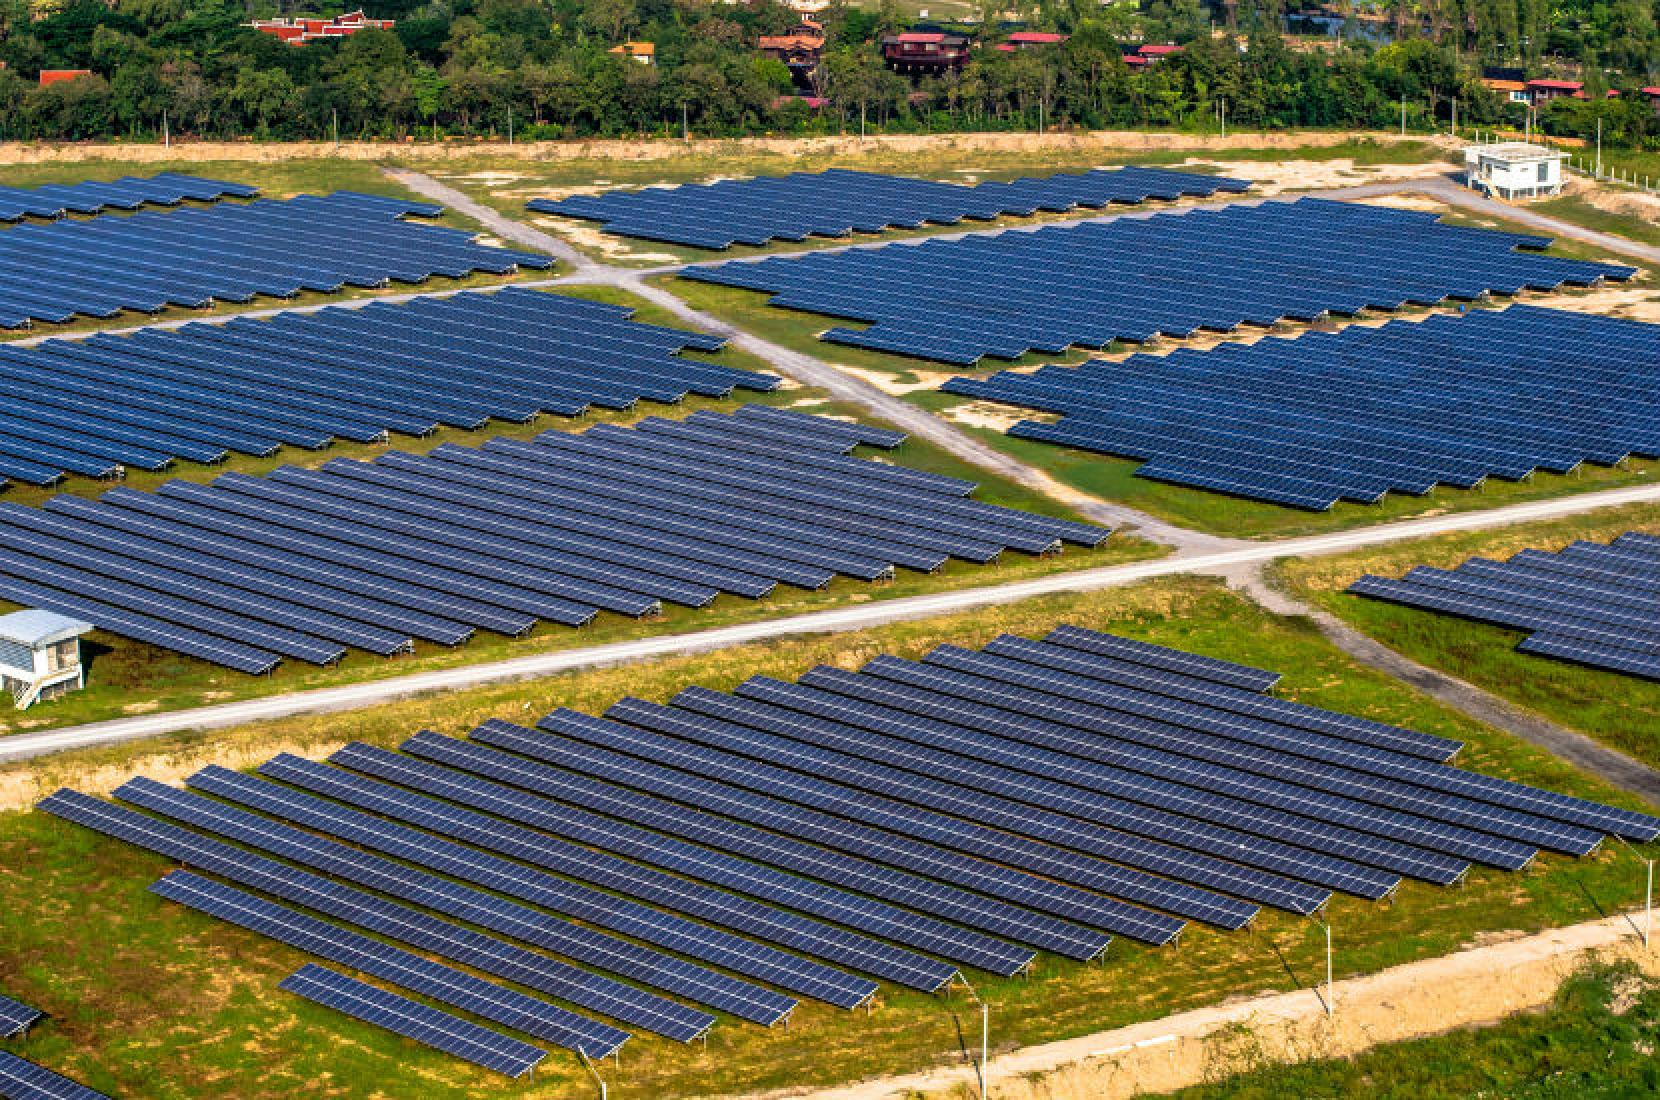 Croatian solar power plant project for Cres island officially presented